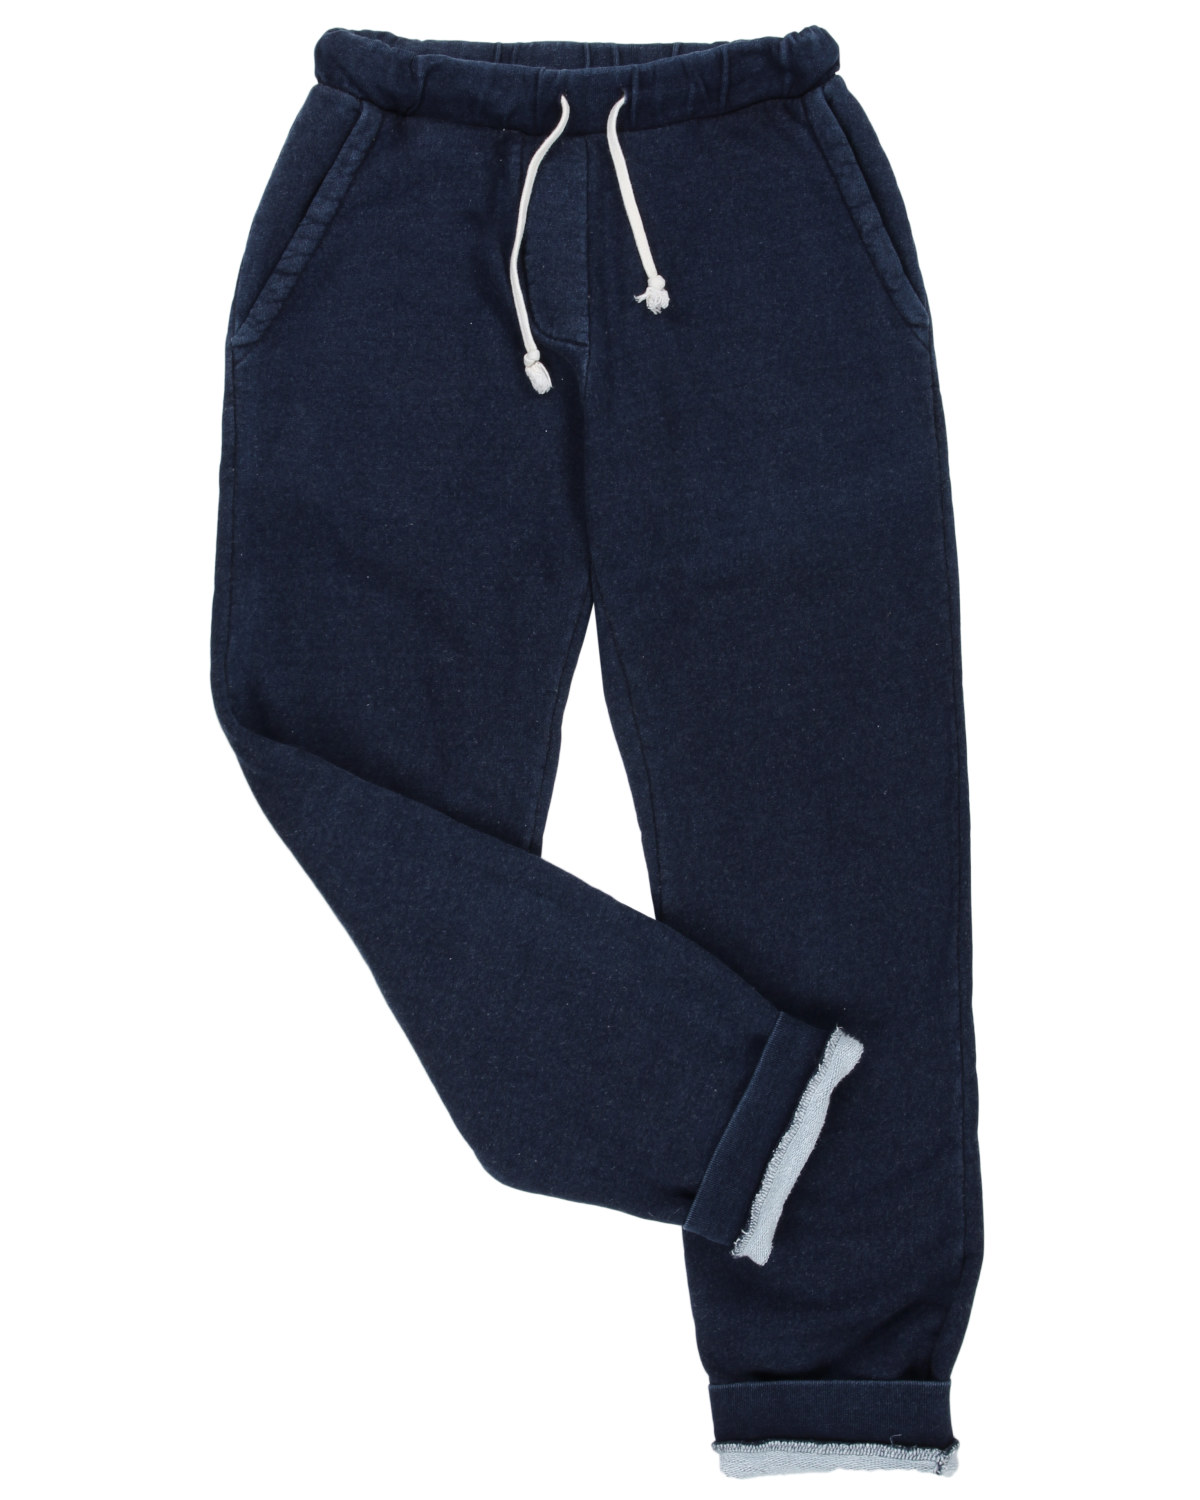 Sea Washed Indigo Fleece Sweatpants